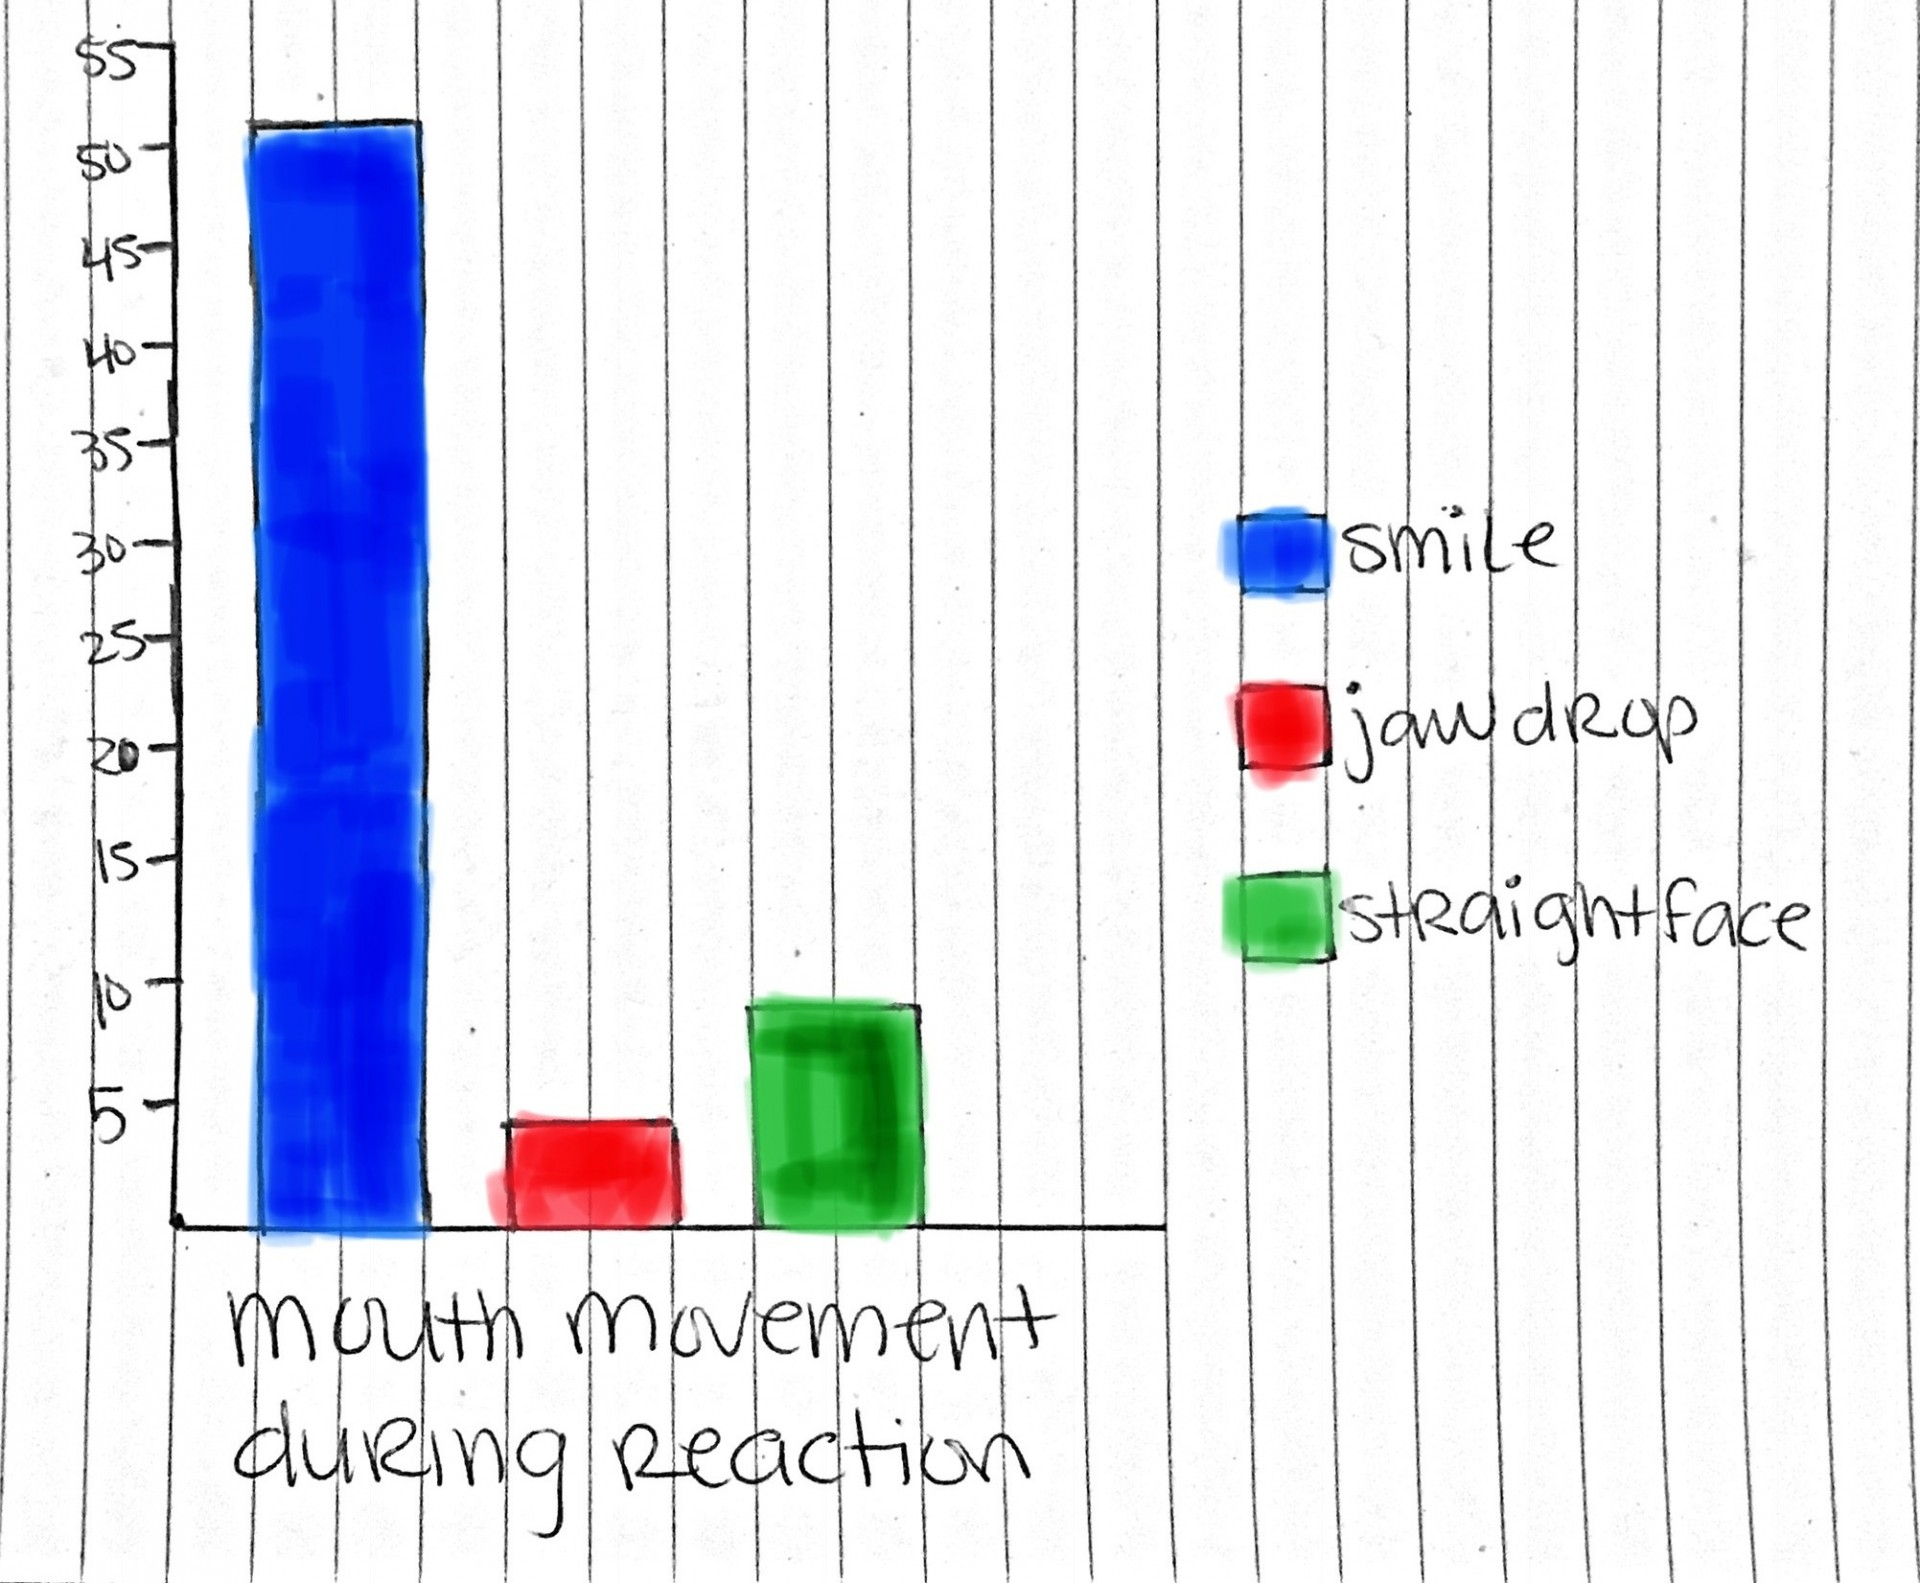 mouth movement during reaction